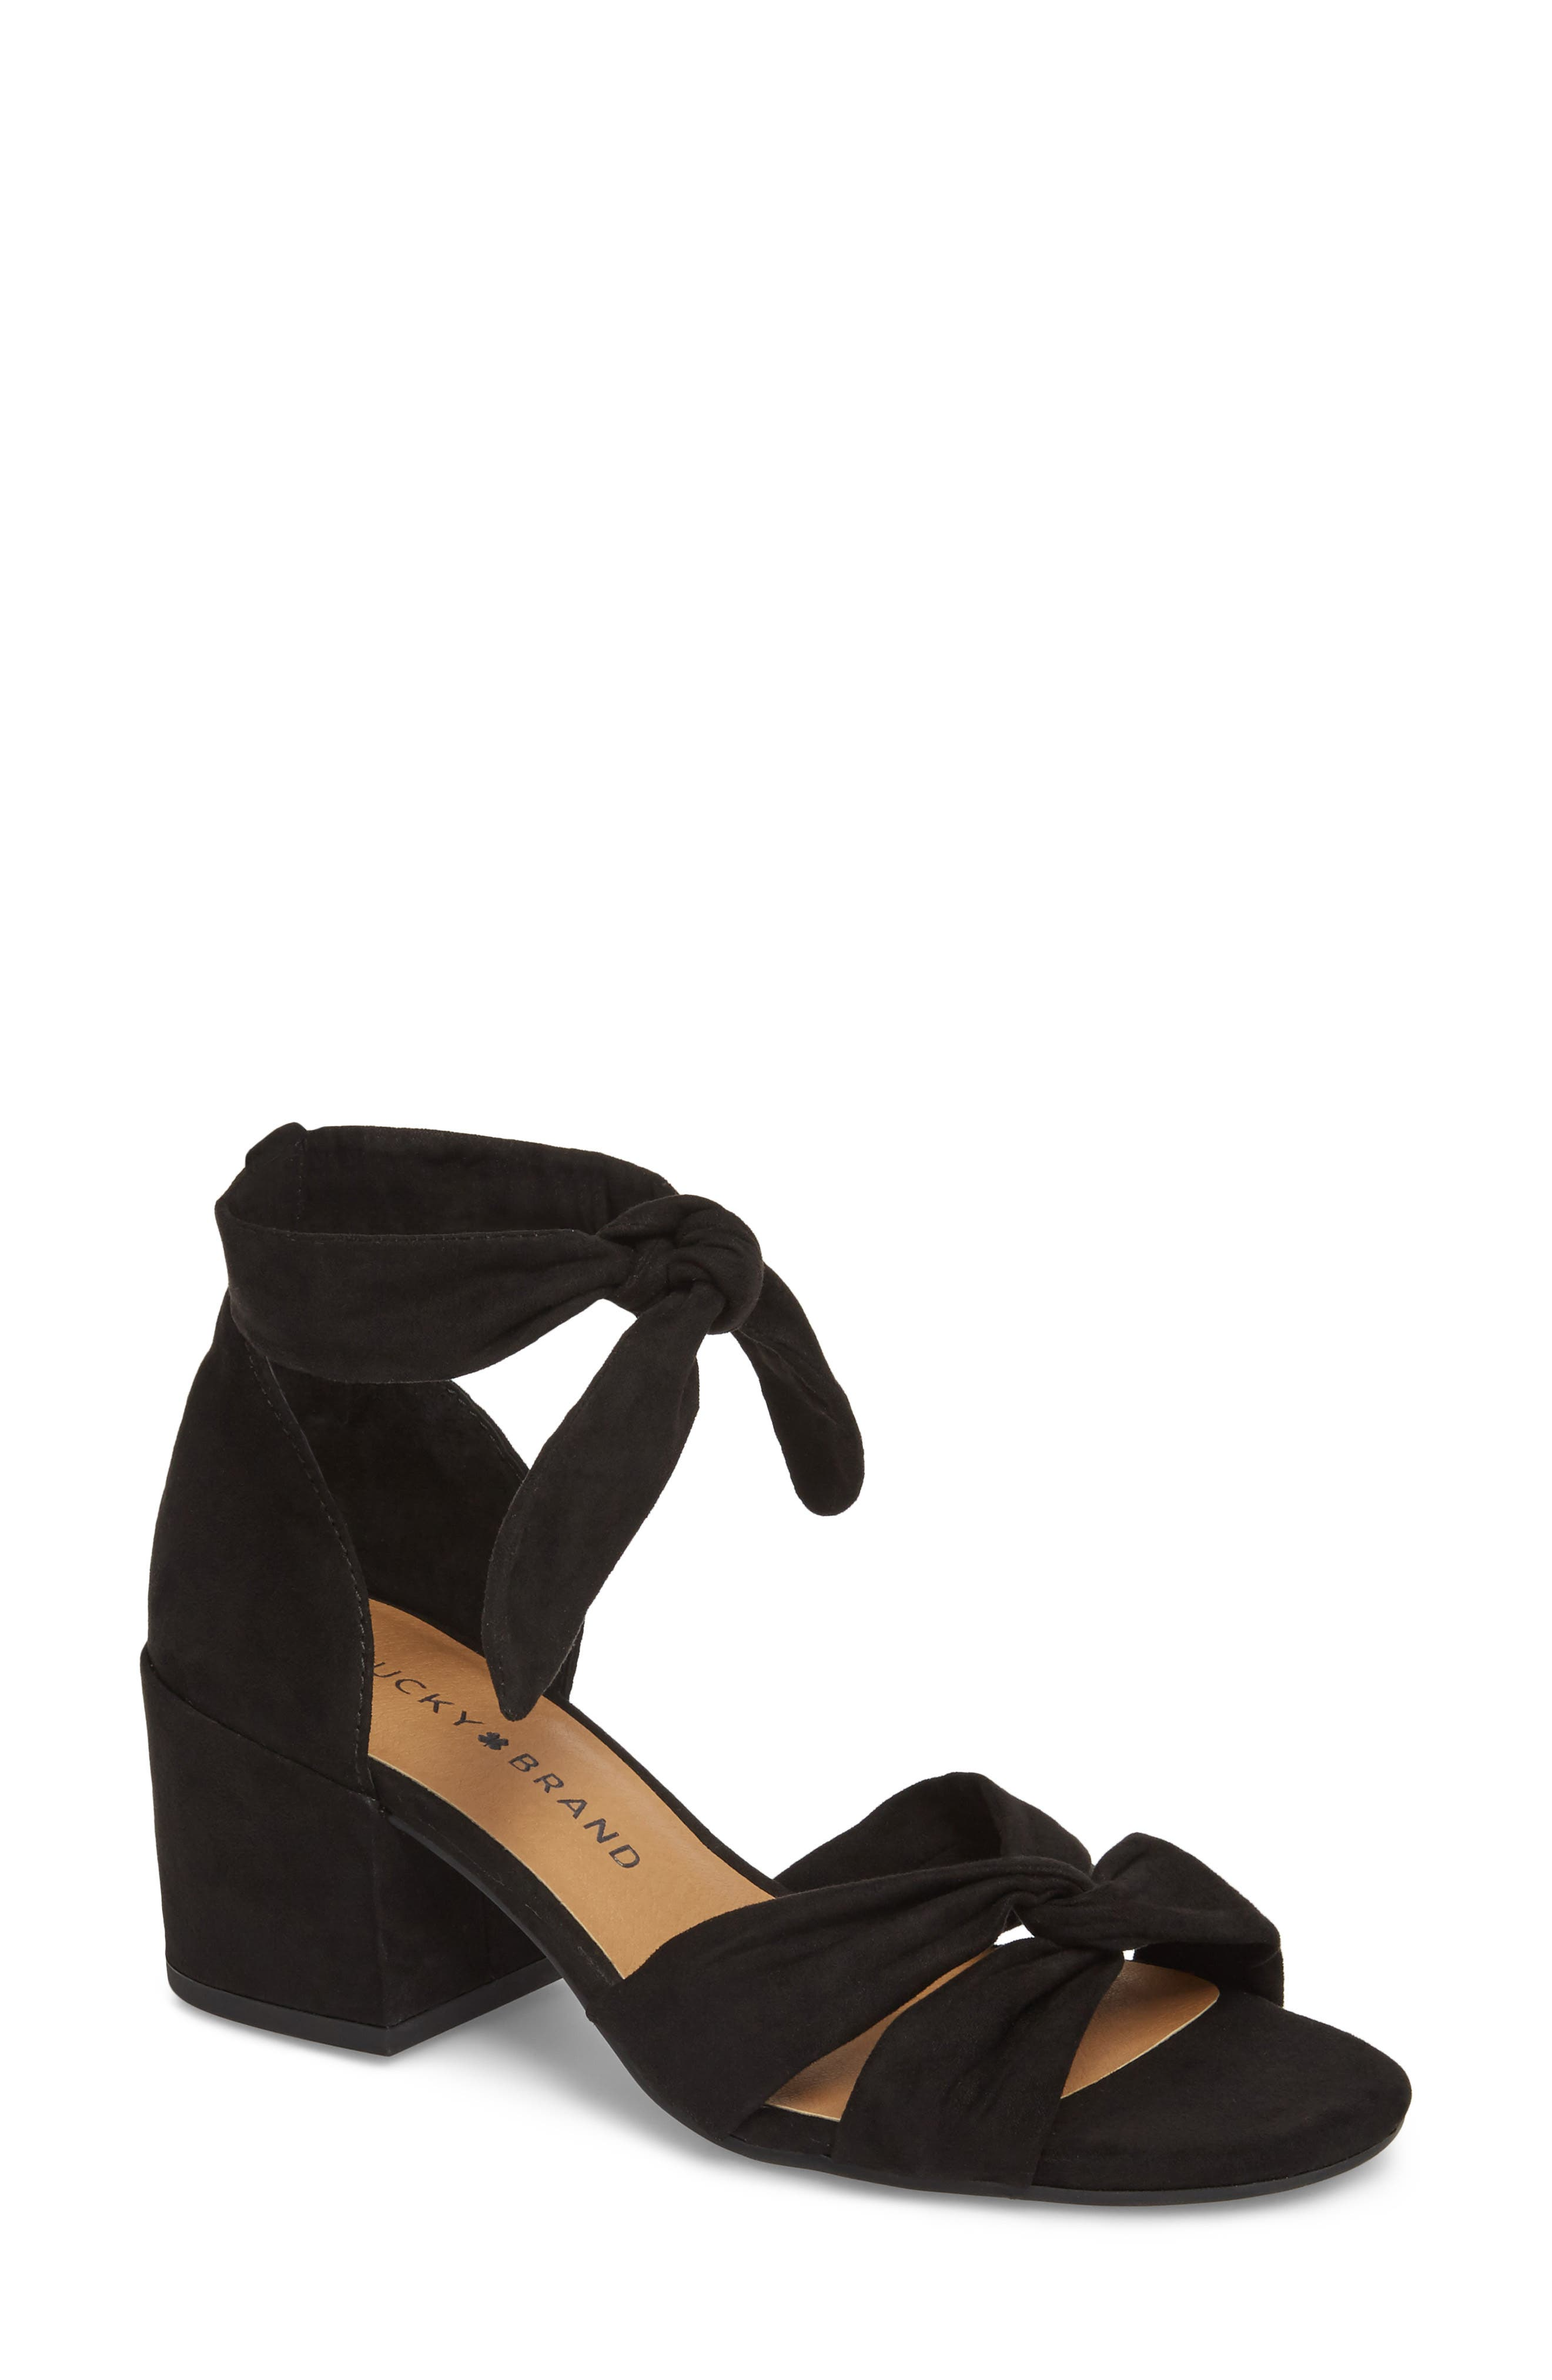 Xaylah Ankle Strap Sandal,                         Main,                         color,